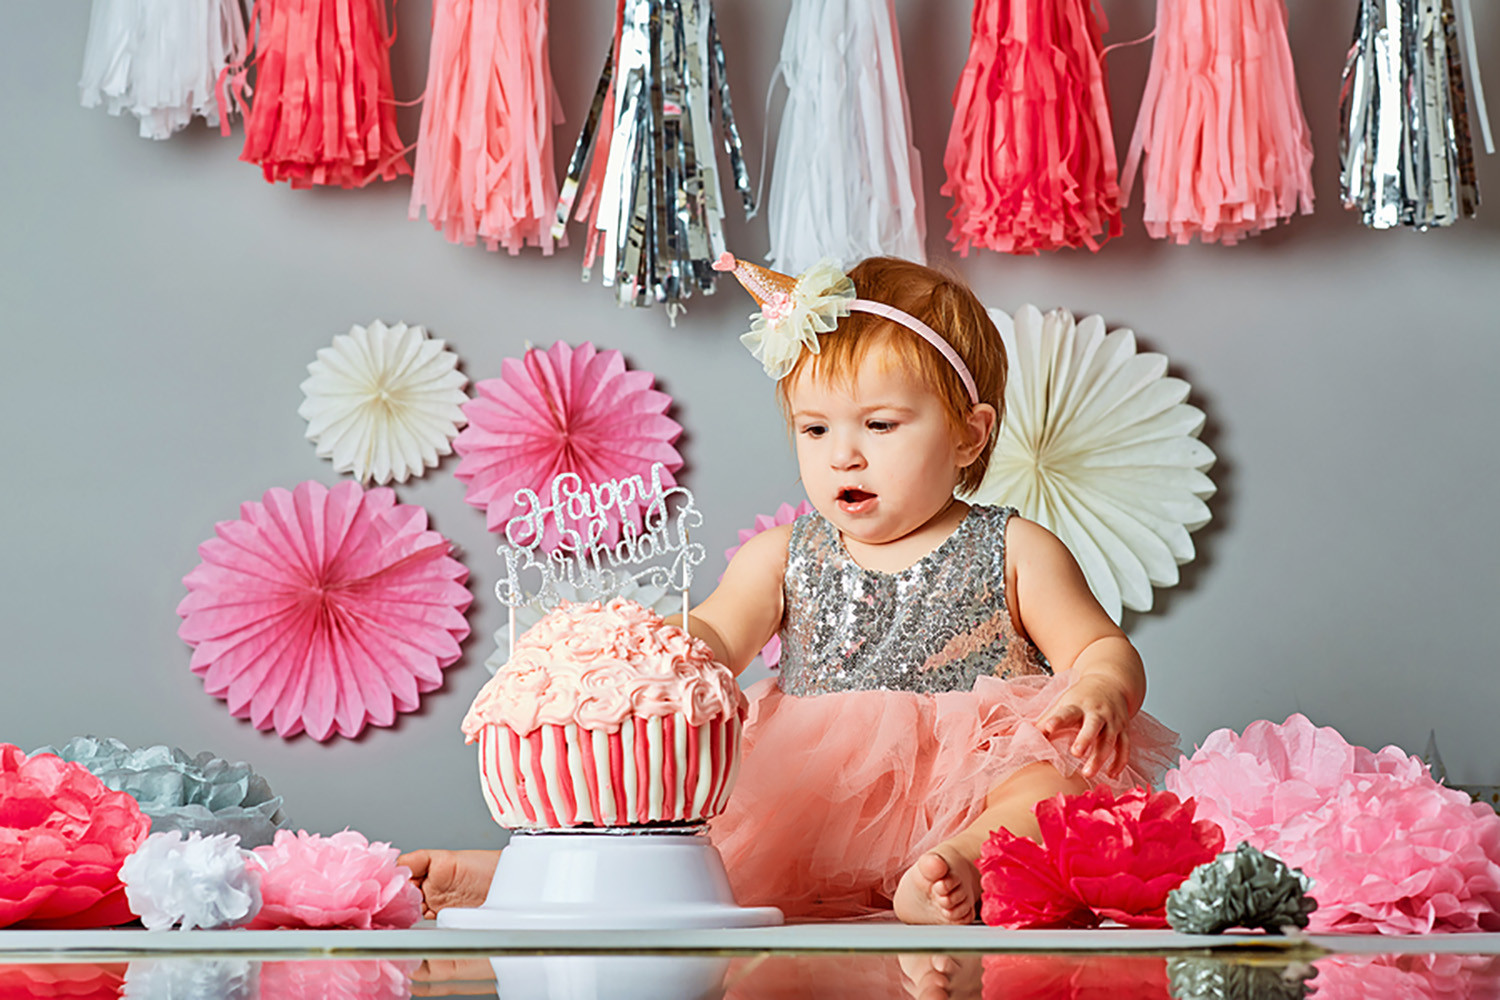 Gifts For Baby Girls First Birthday  Baby s 1st Birthday Gifts & Party Ideas for Boys & Girls